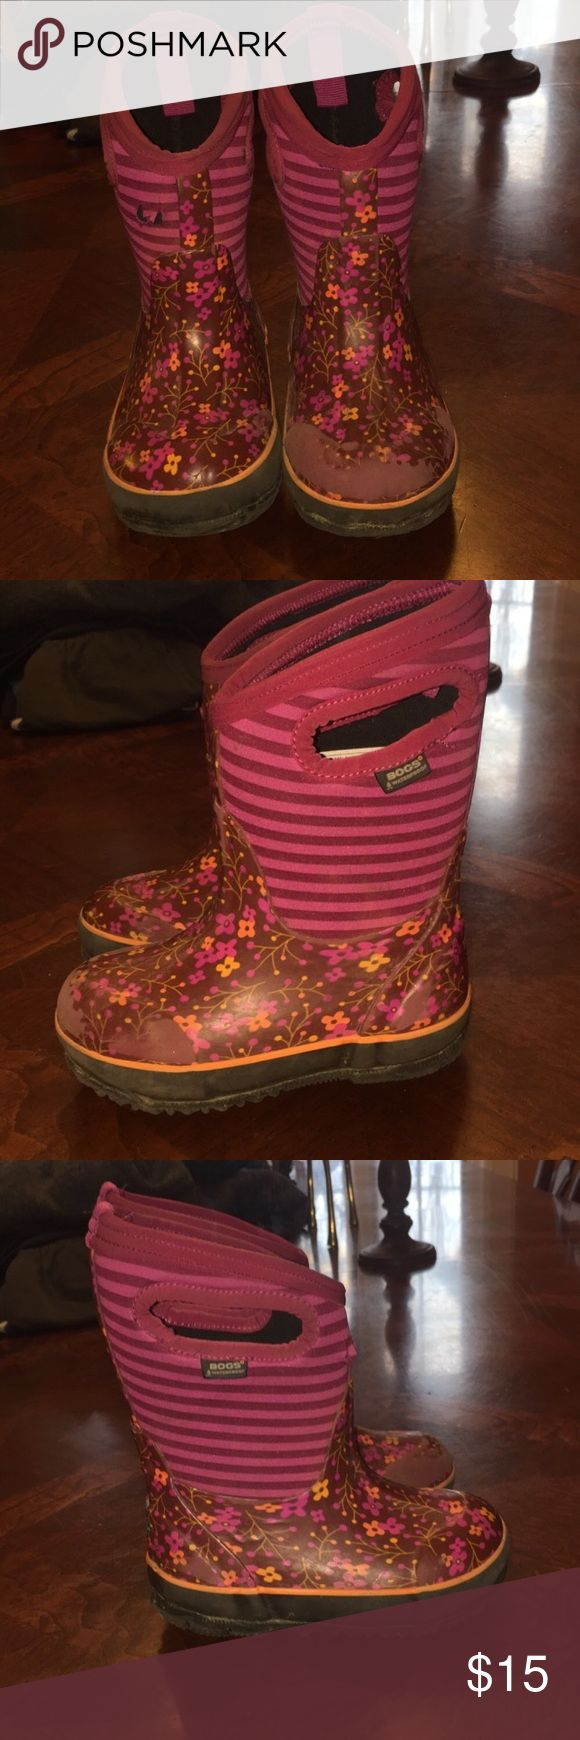 Girls rain boots or winter boots Very used and price reflects use! Great rain boots and even winter boots and they are great for keeping little toes warm in up to -30 degree weather. Feel free to ask questions ! Bogs Shoes Rain & Snow Boots